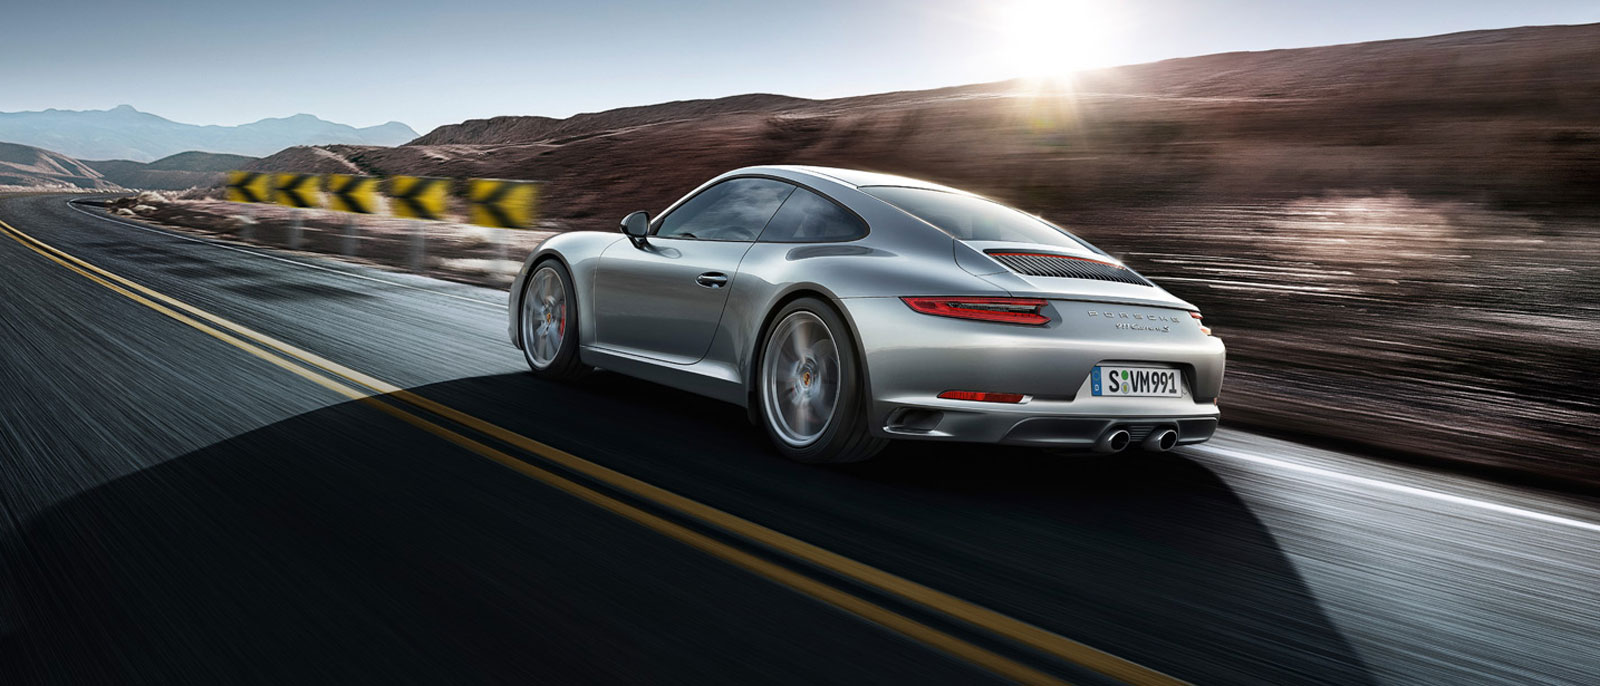 2016 porsche 911 carrera s is the pinnacle of sports performance. Black Bedroom Furniture Sets. Home Design Ideas